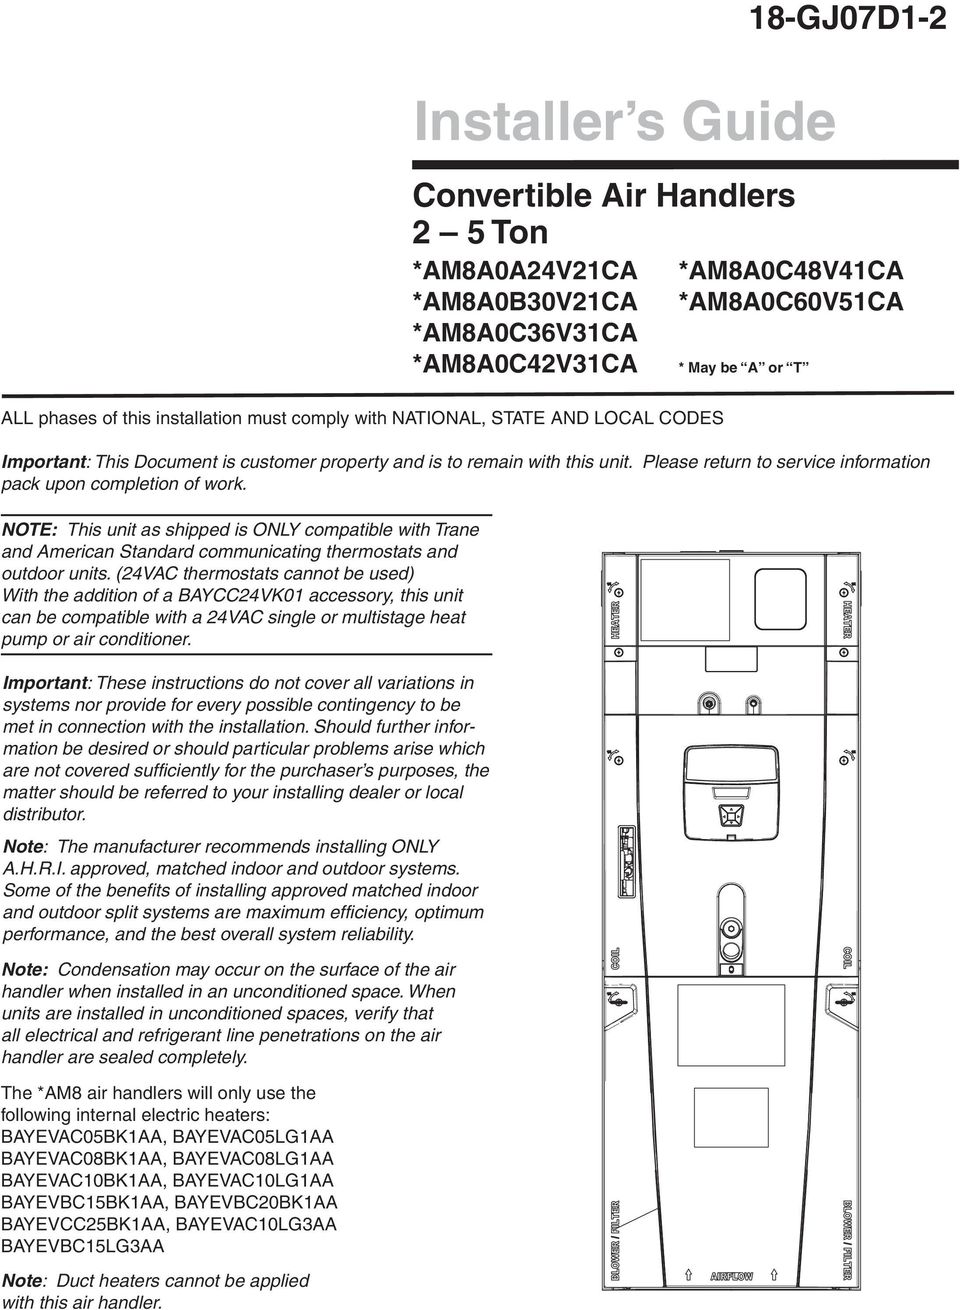 Installer S Guide 18 Gj07d1 2 Convertible Air Handlers 5 Ton Kit15815 Trane Xv80 Stagevariable Speed Gas Furnace Installation Must Comply With National State And Local Codes